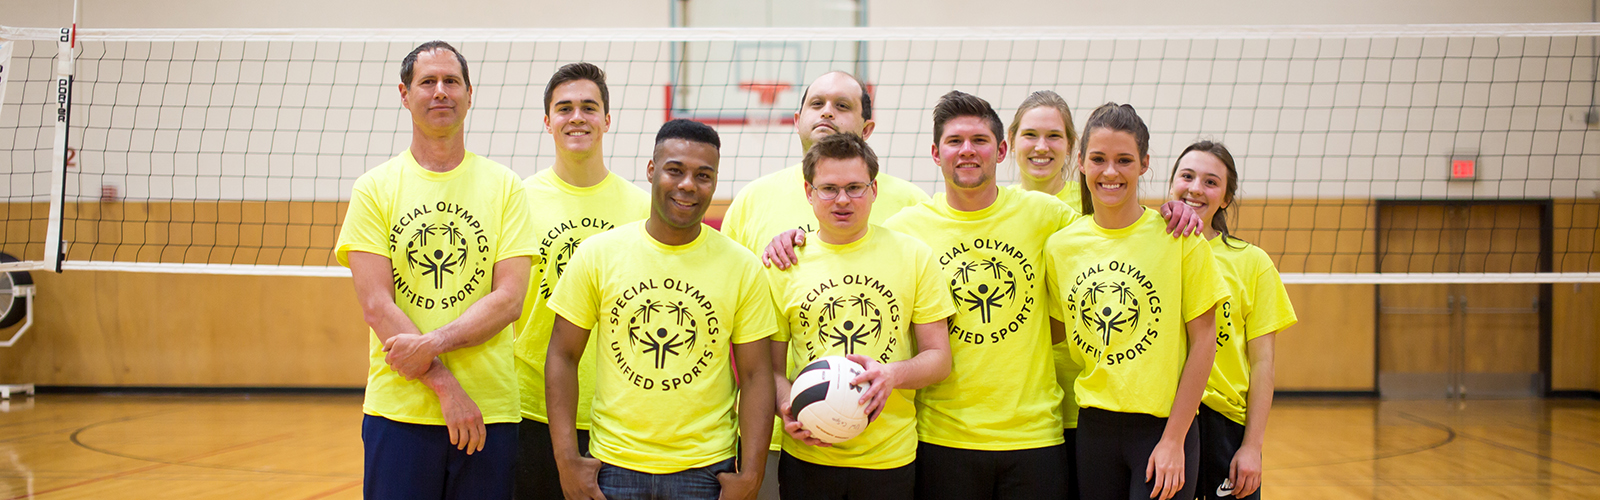 A photo of a Unified Volleyball team